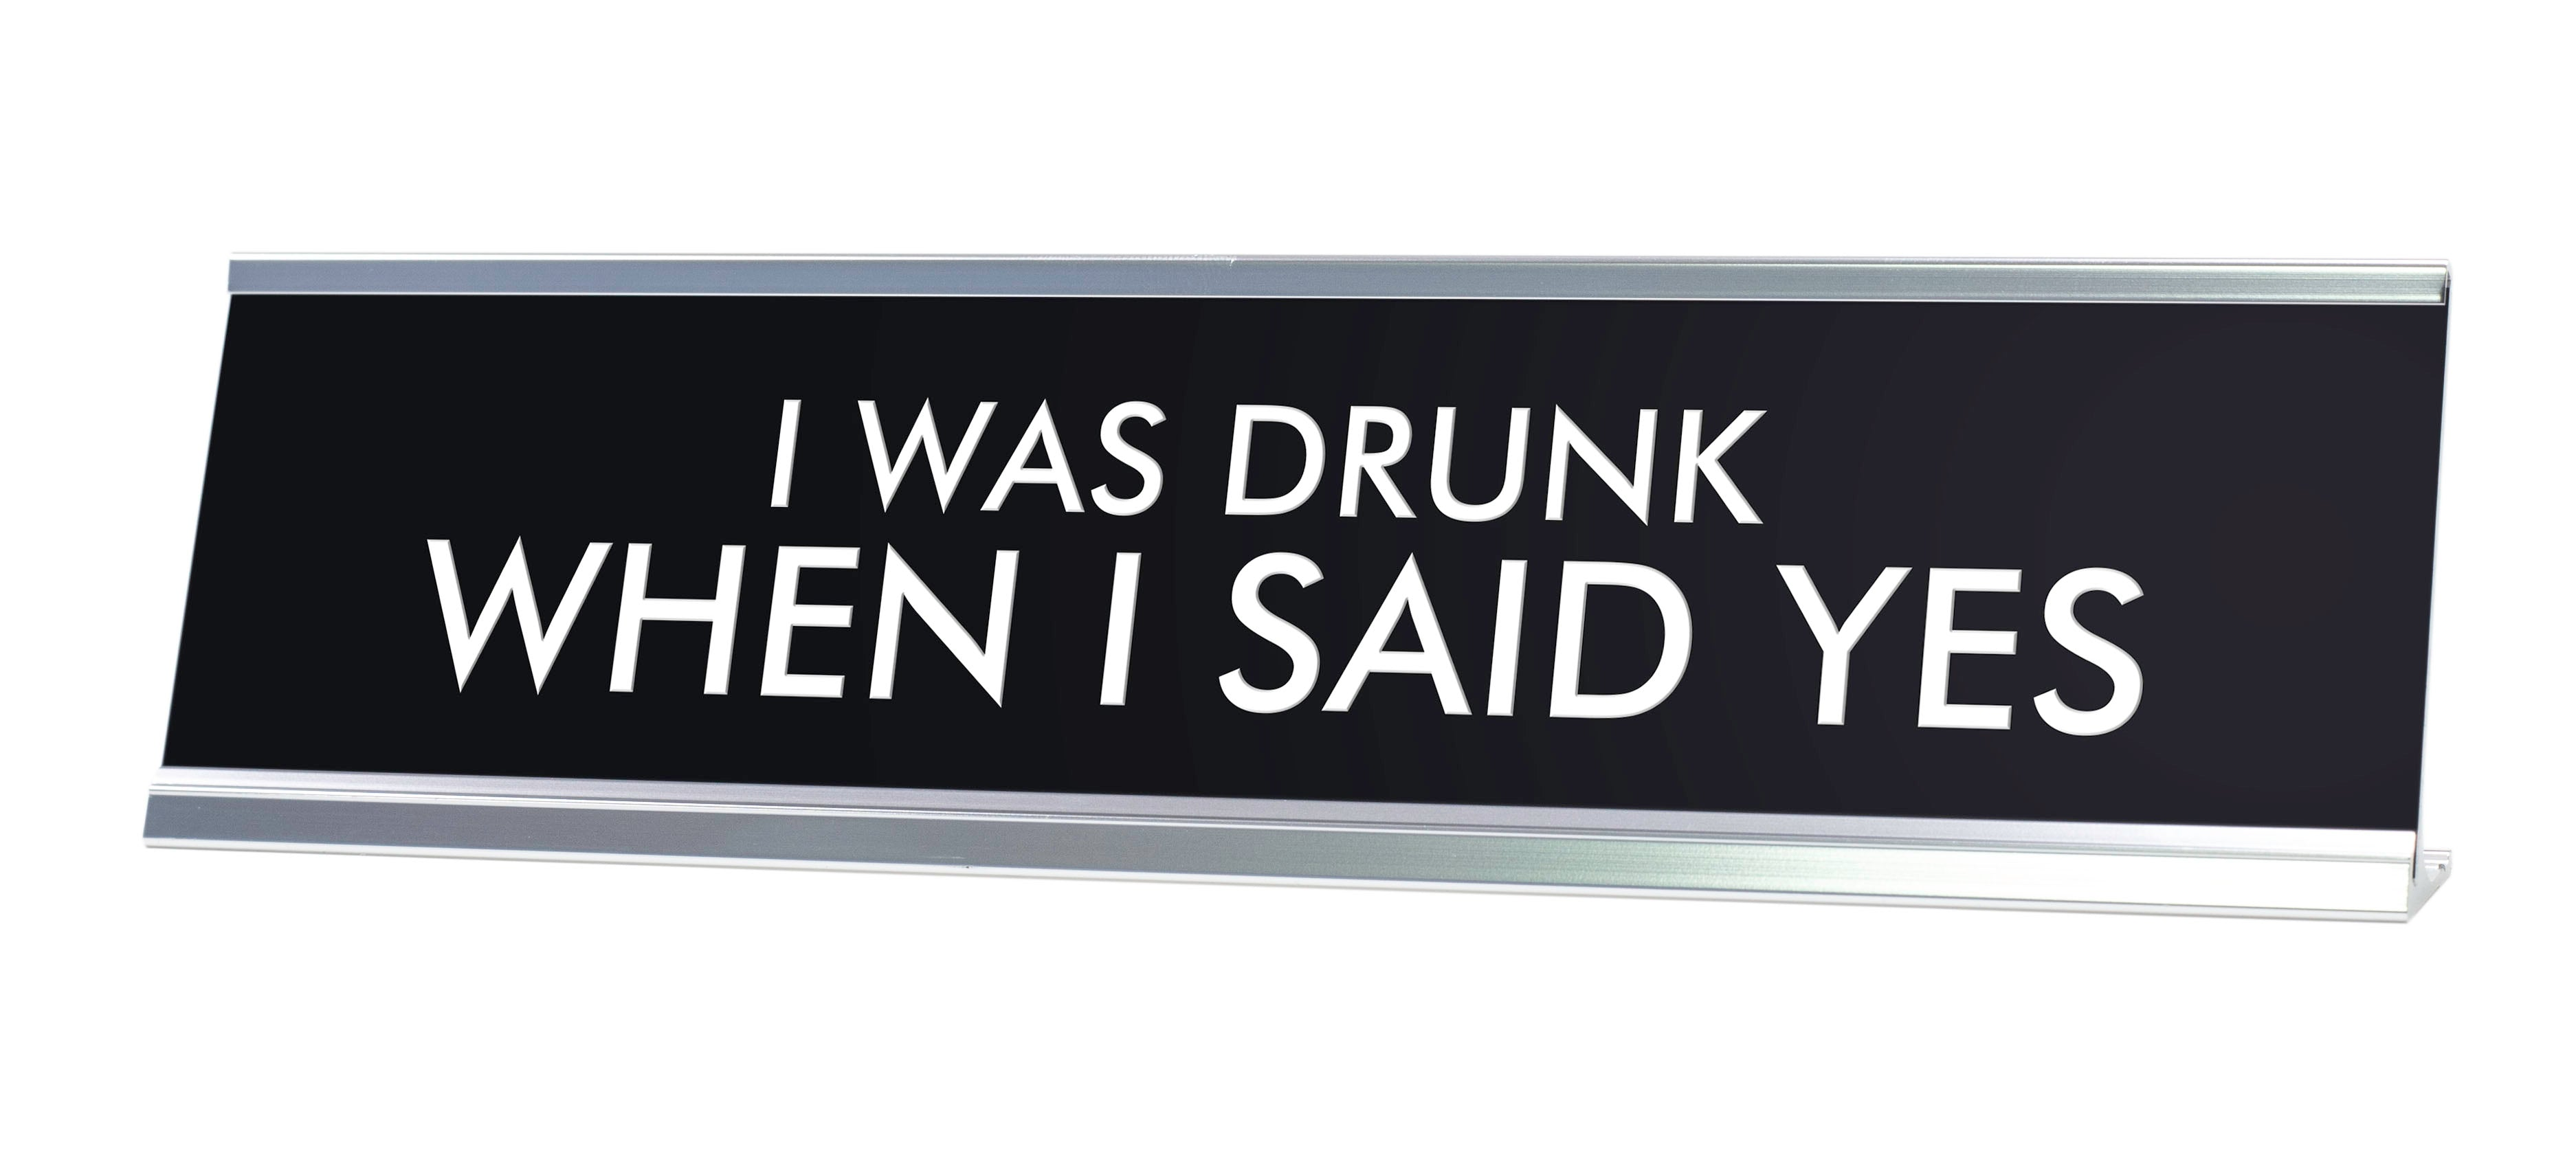 I WAS DRUNK WHEN I SAID YES Novelty Desk Sign